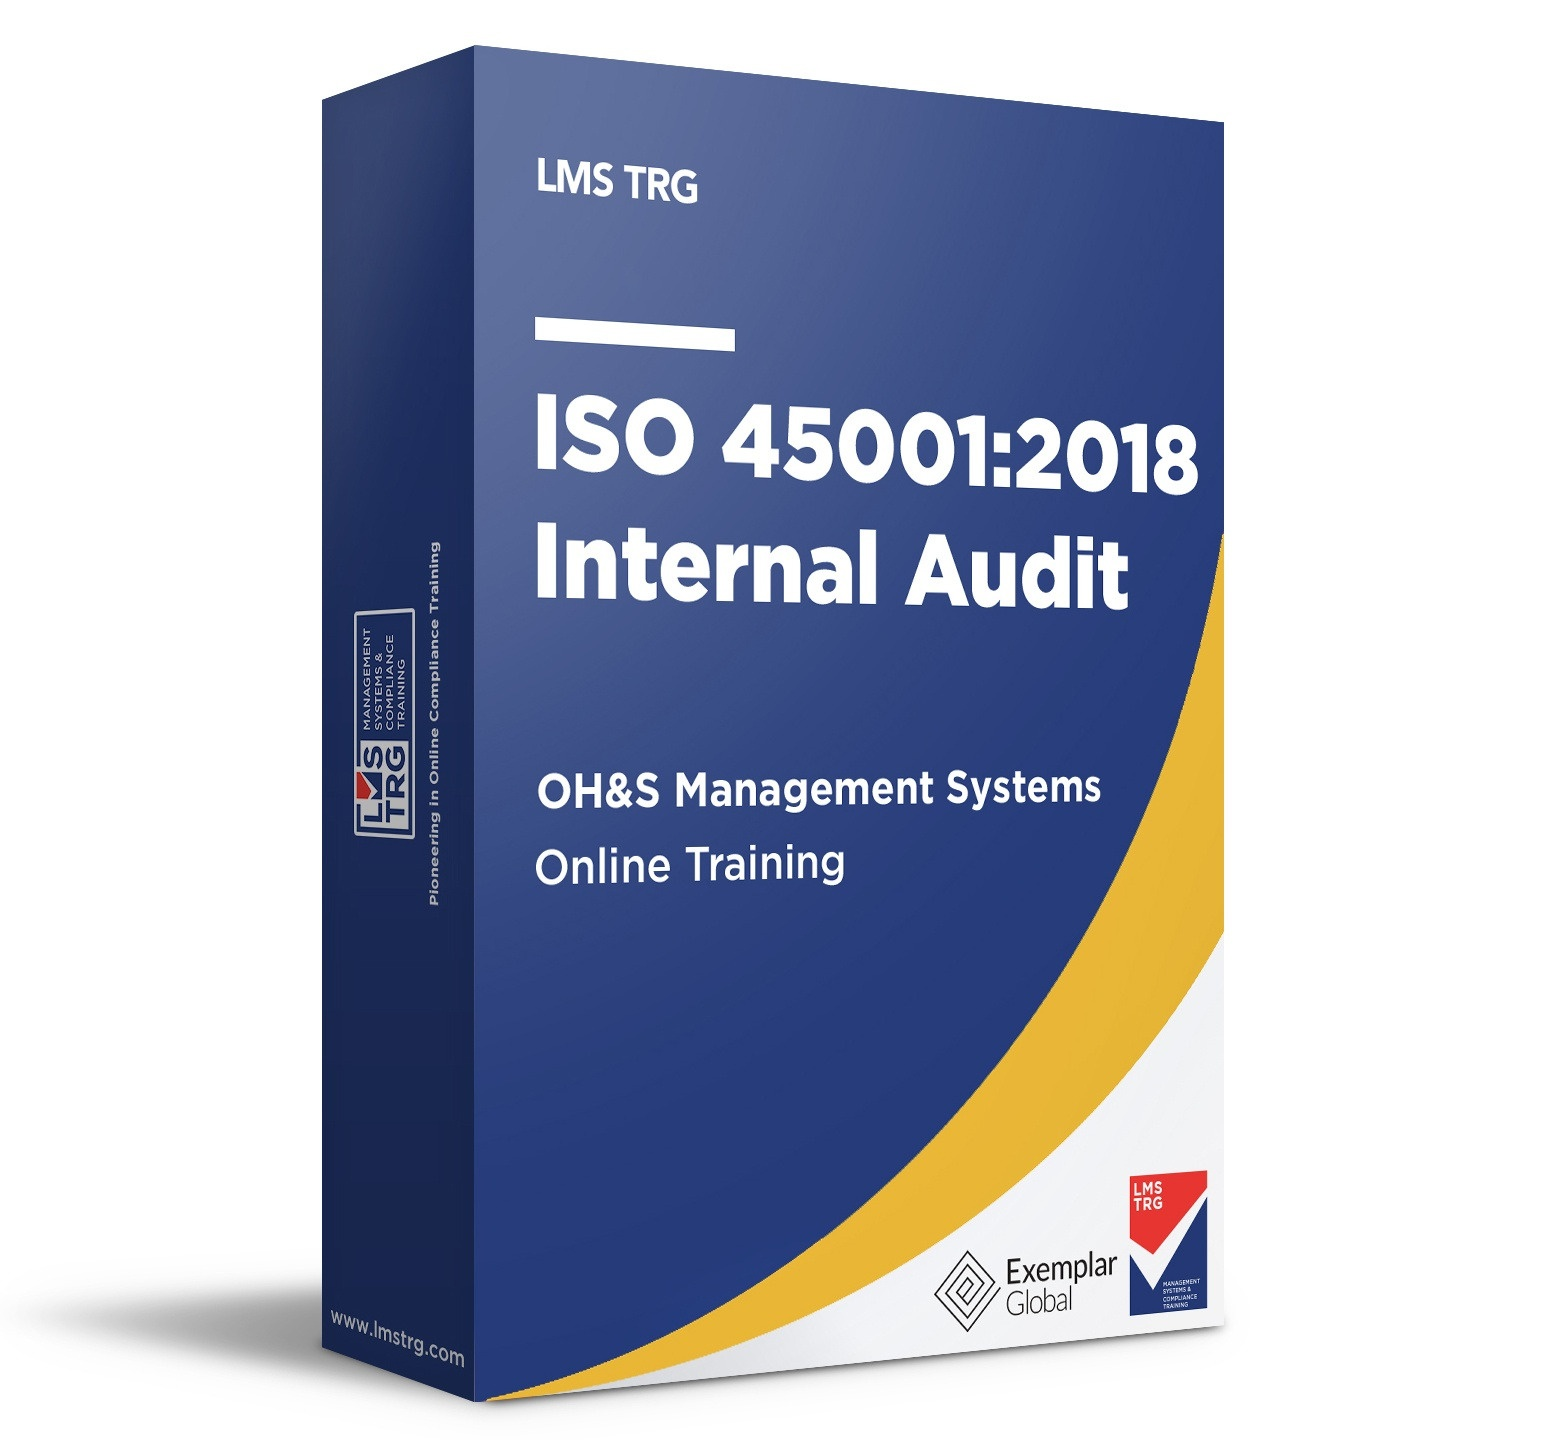 occupational health and safety management systems ISO 45001